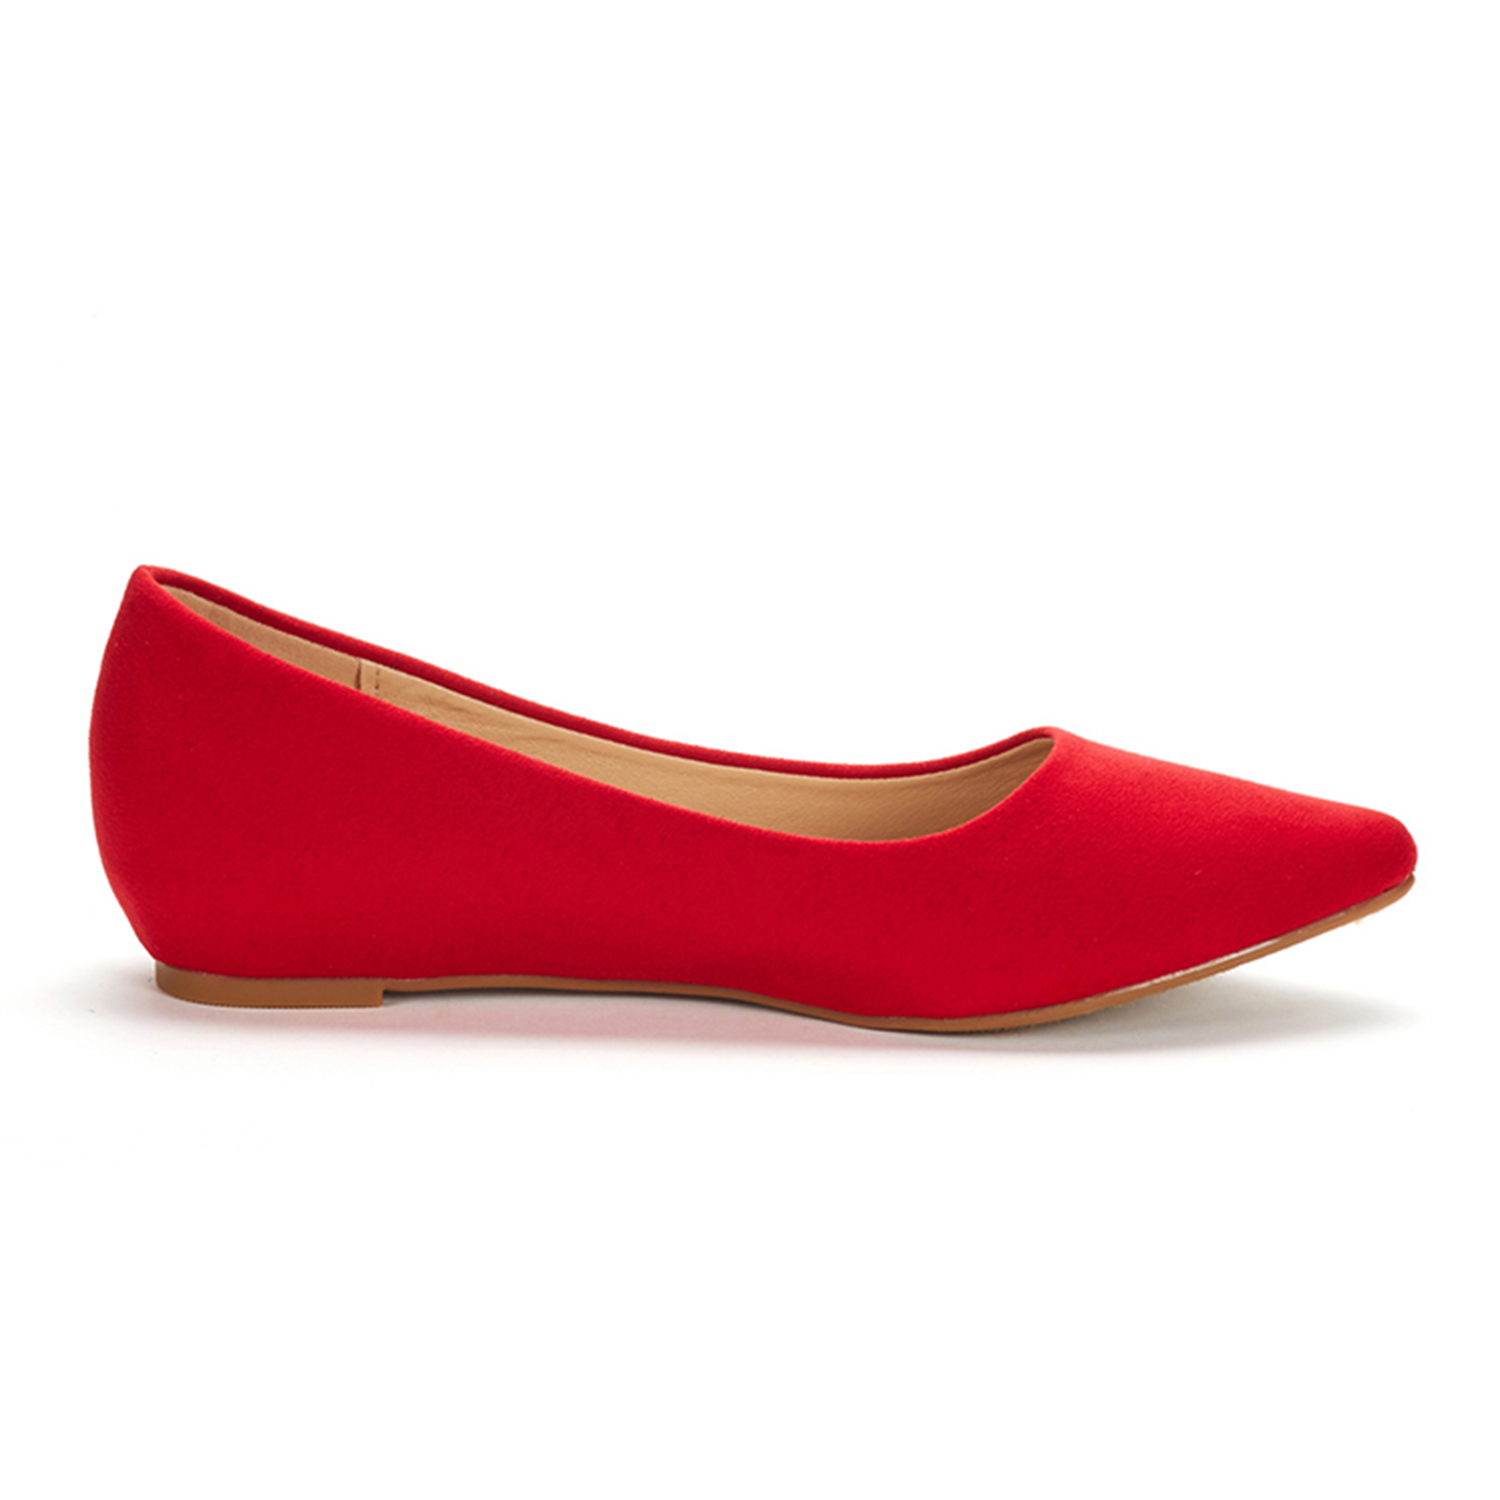 DREAM-PAIRS-Women-Low-Wedge-Flats-Ladies-Pointed-Toe-Slip-On-Comfort-Flat-Shoes thumbnail 4